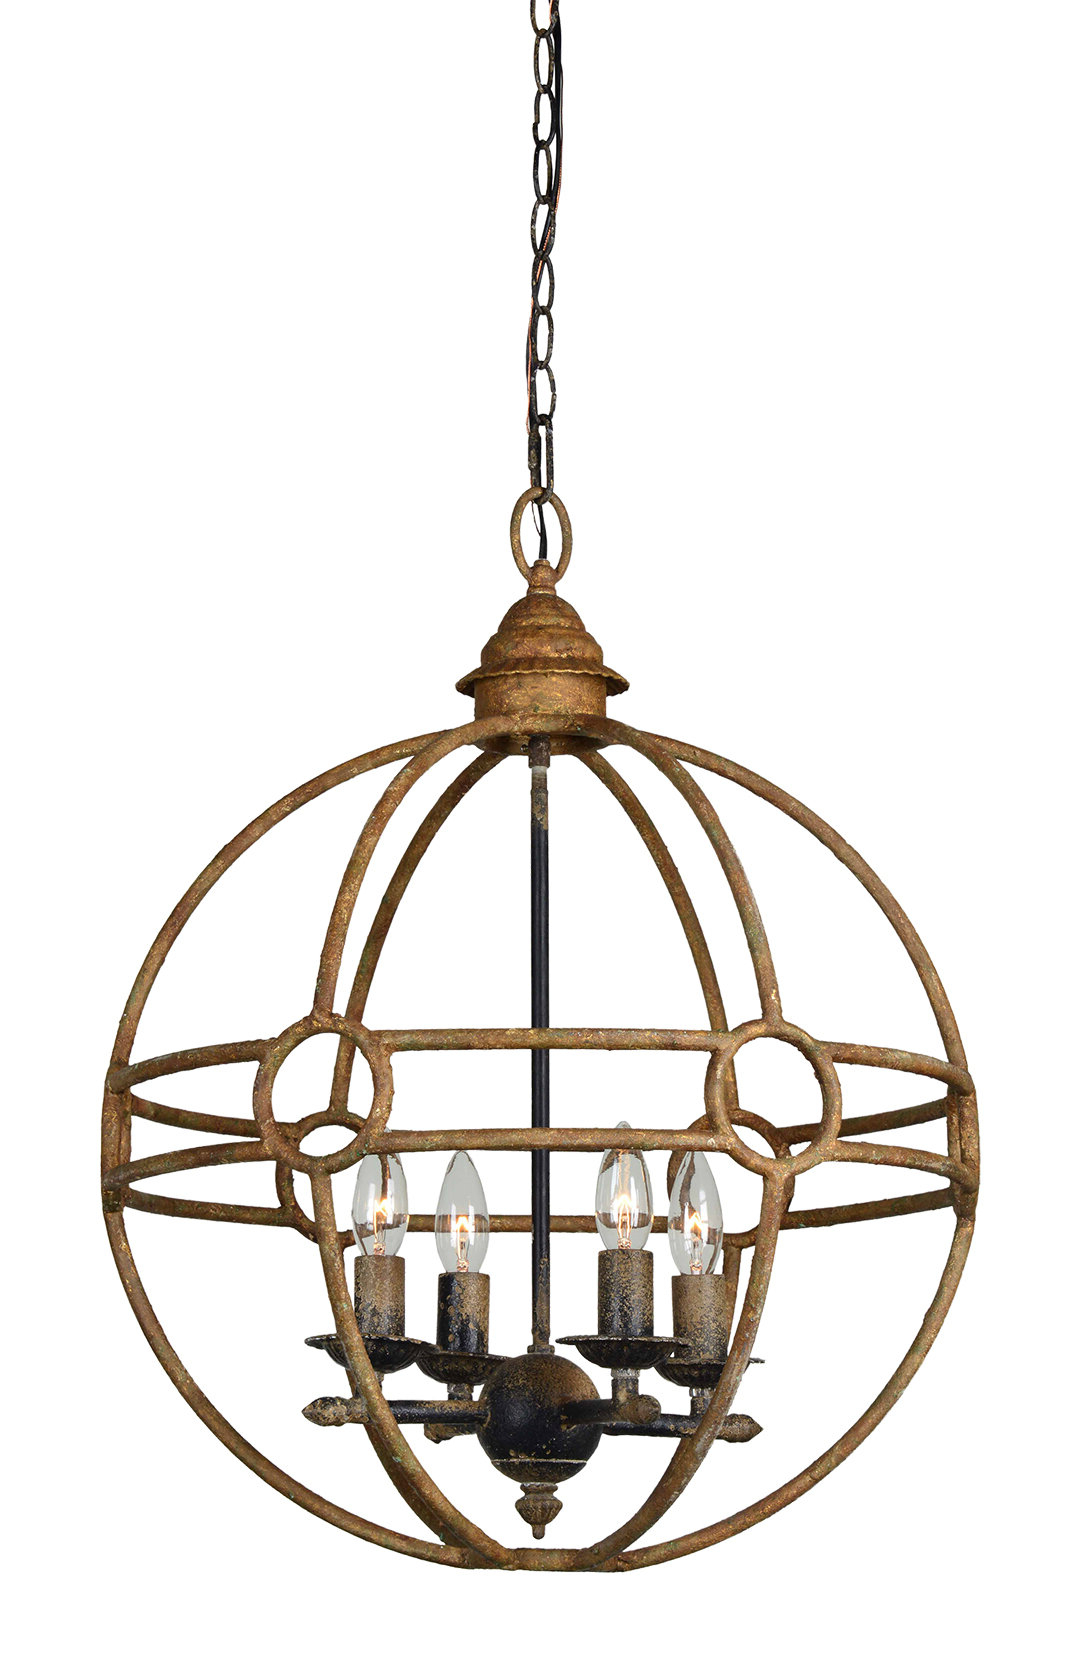 Shipststour 3 Light Globe Chandeliers Pertaining To Favorite Millicent 4 Light Globe Chandelier (View 18 of 20)